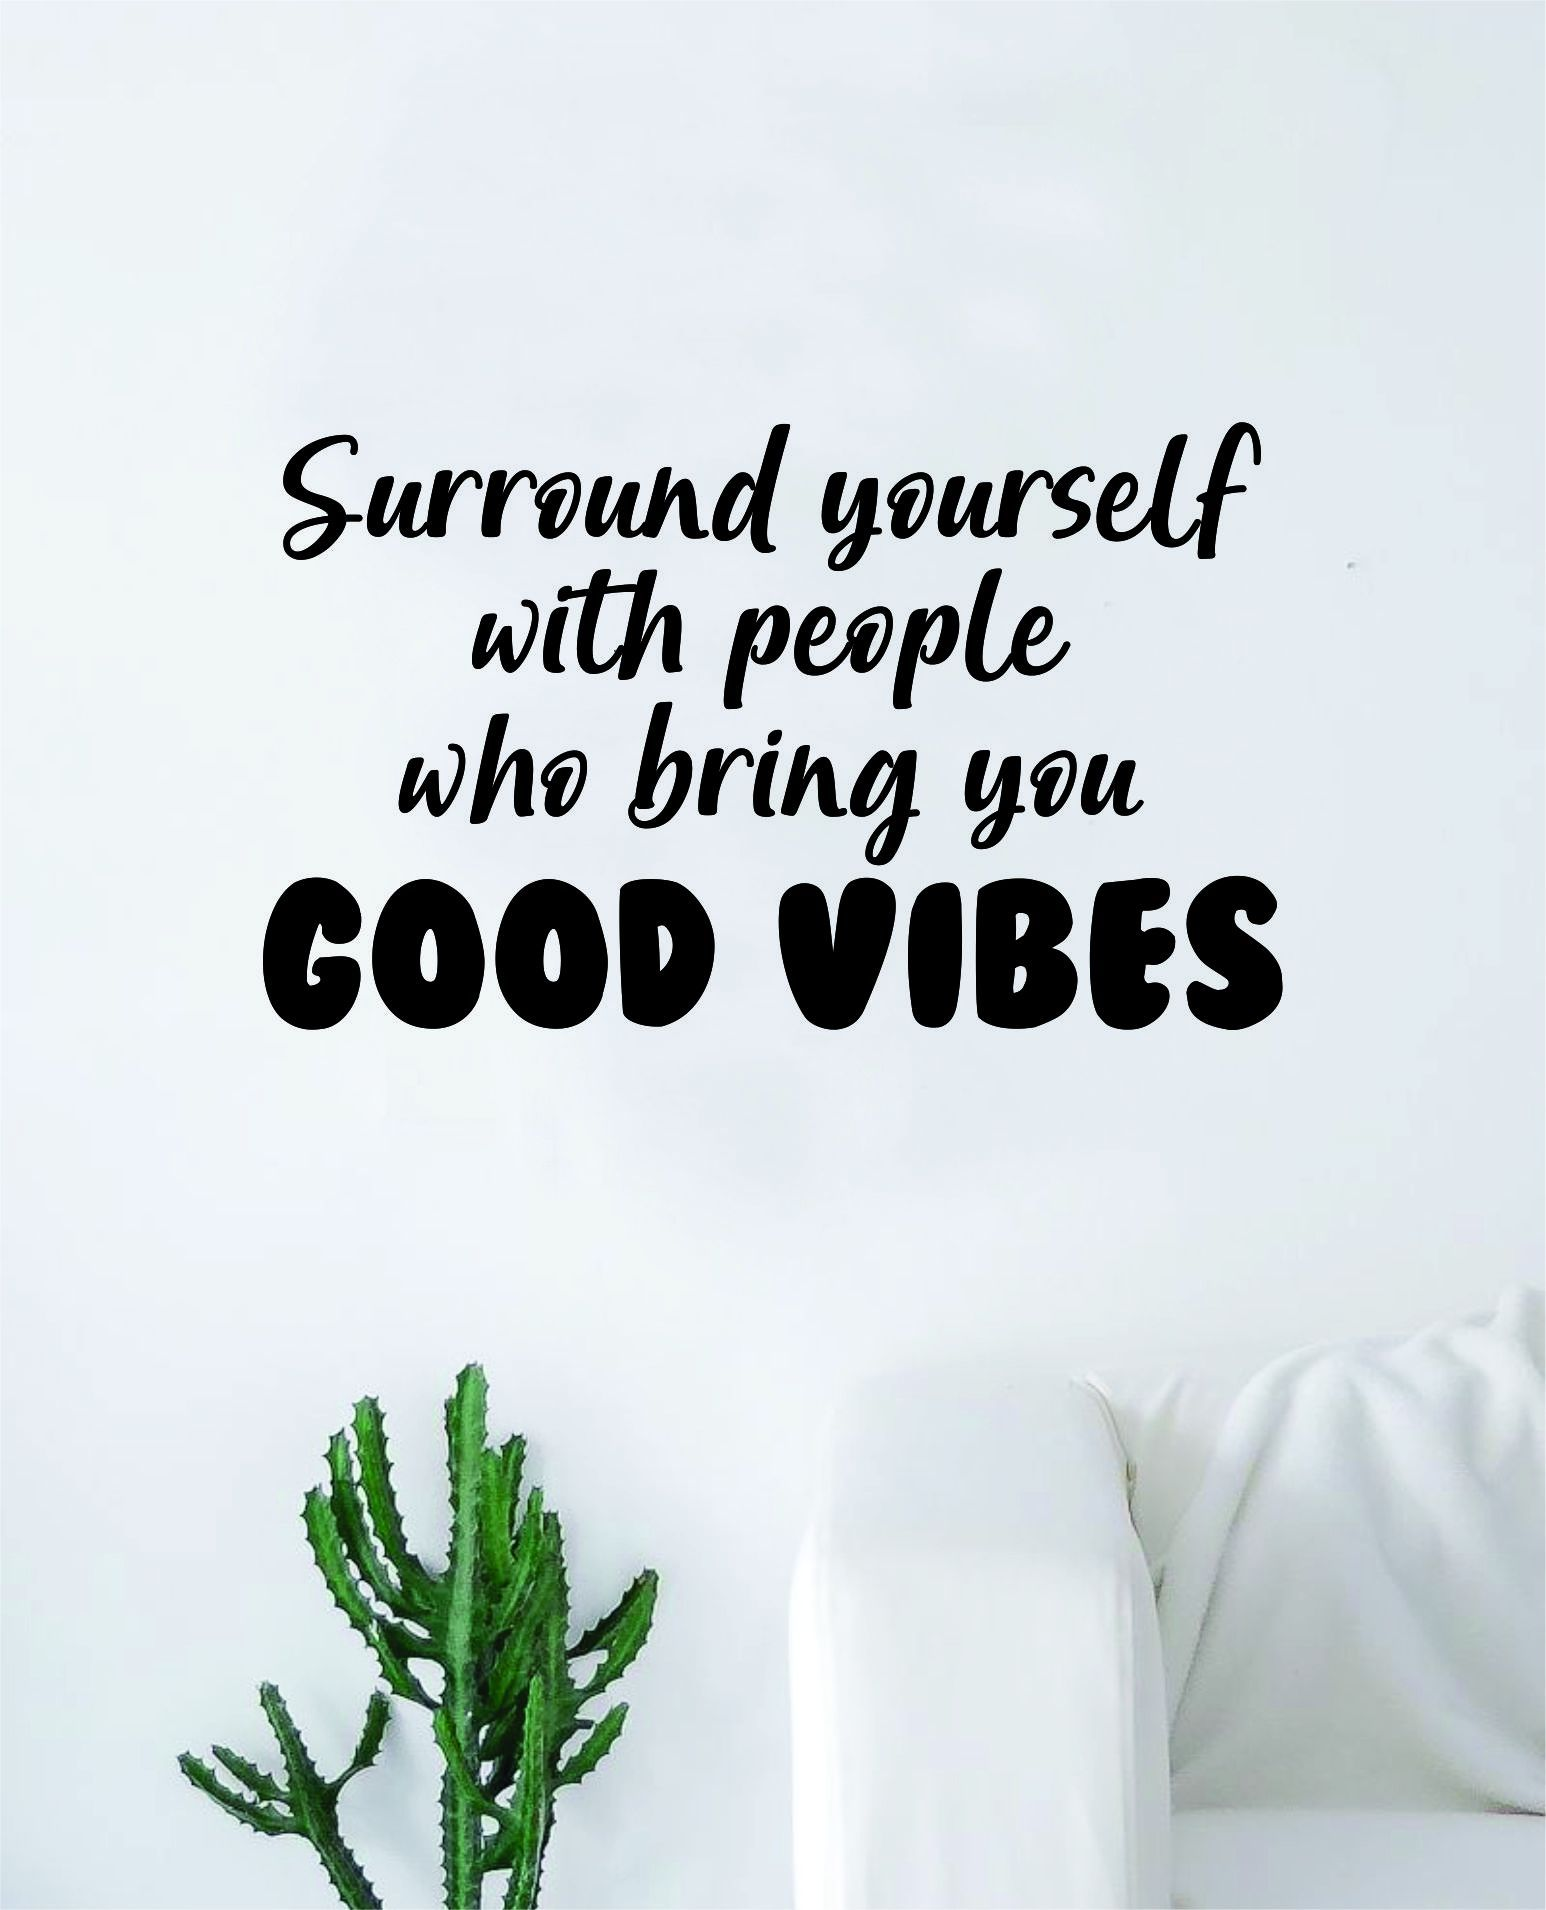 Surround Yourself Good Vibes Quote Wall Decal Sticker Bedroom Room Art Vinyl Inspirational Motivational Teen Happy Positive - brown